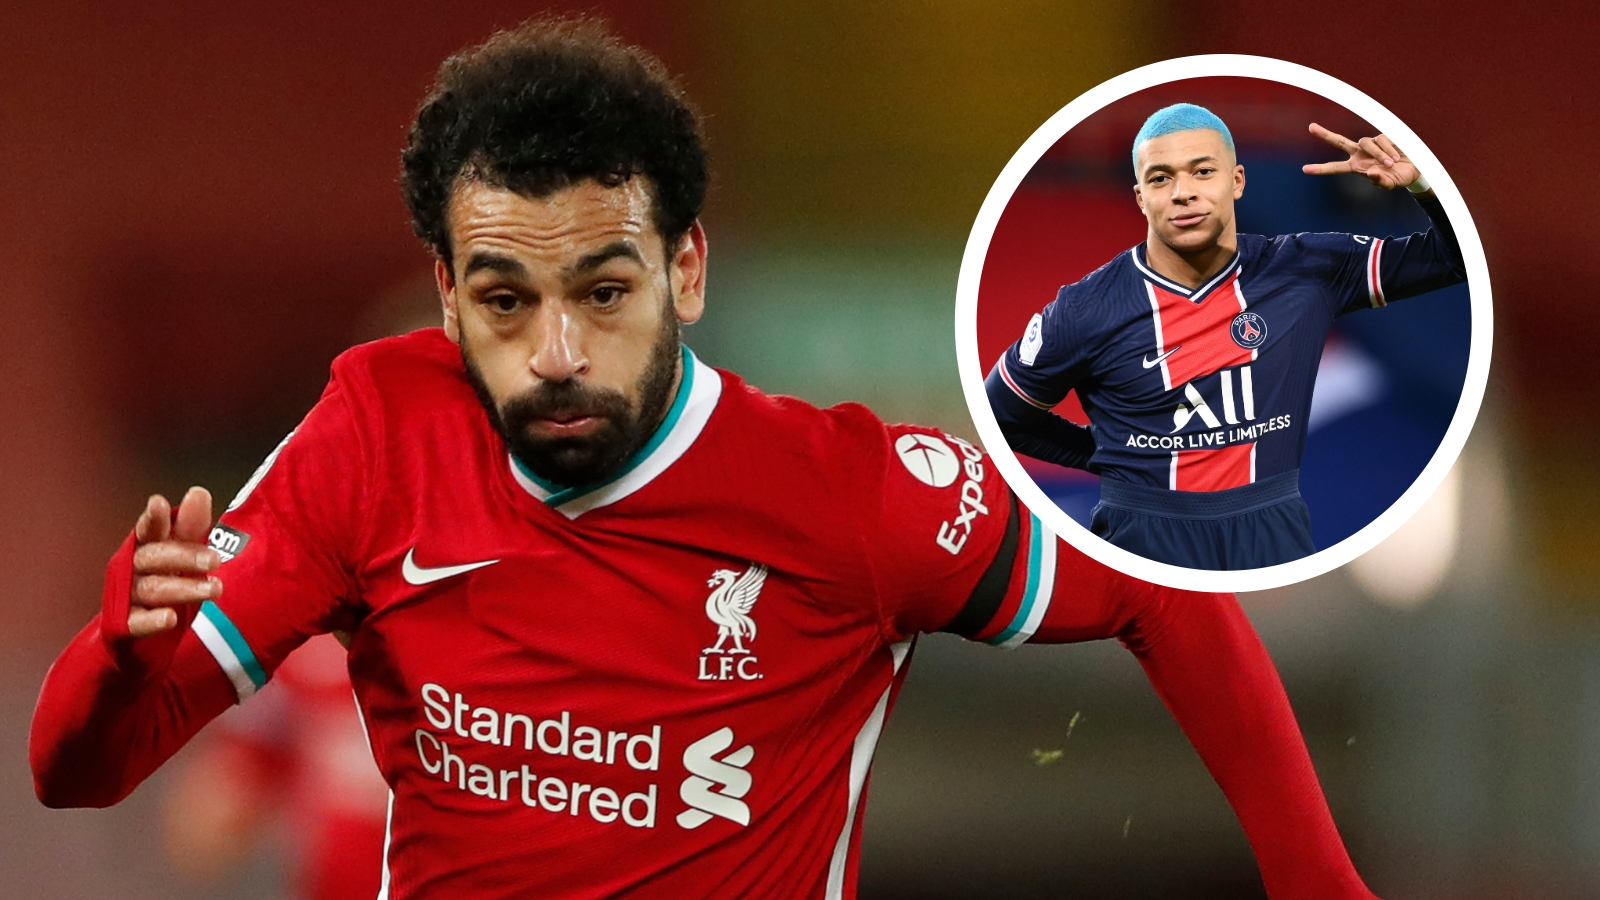 Liverpool need a superstar like Mbappe if Salah goes, says ex-Red Murphy